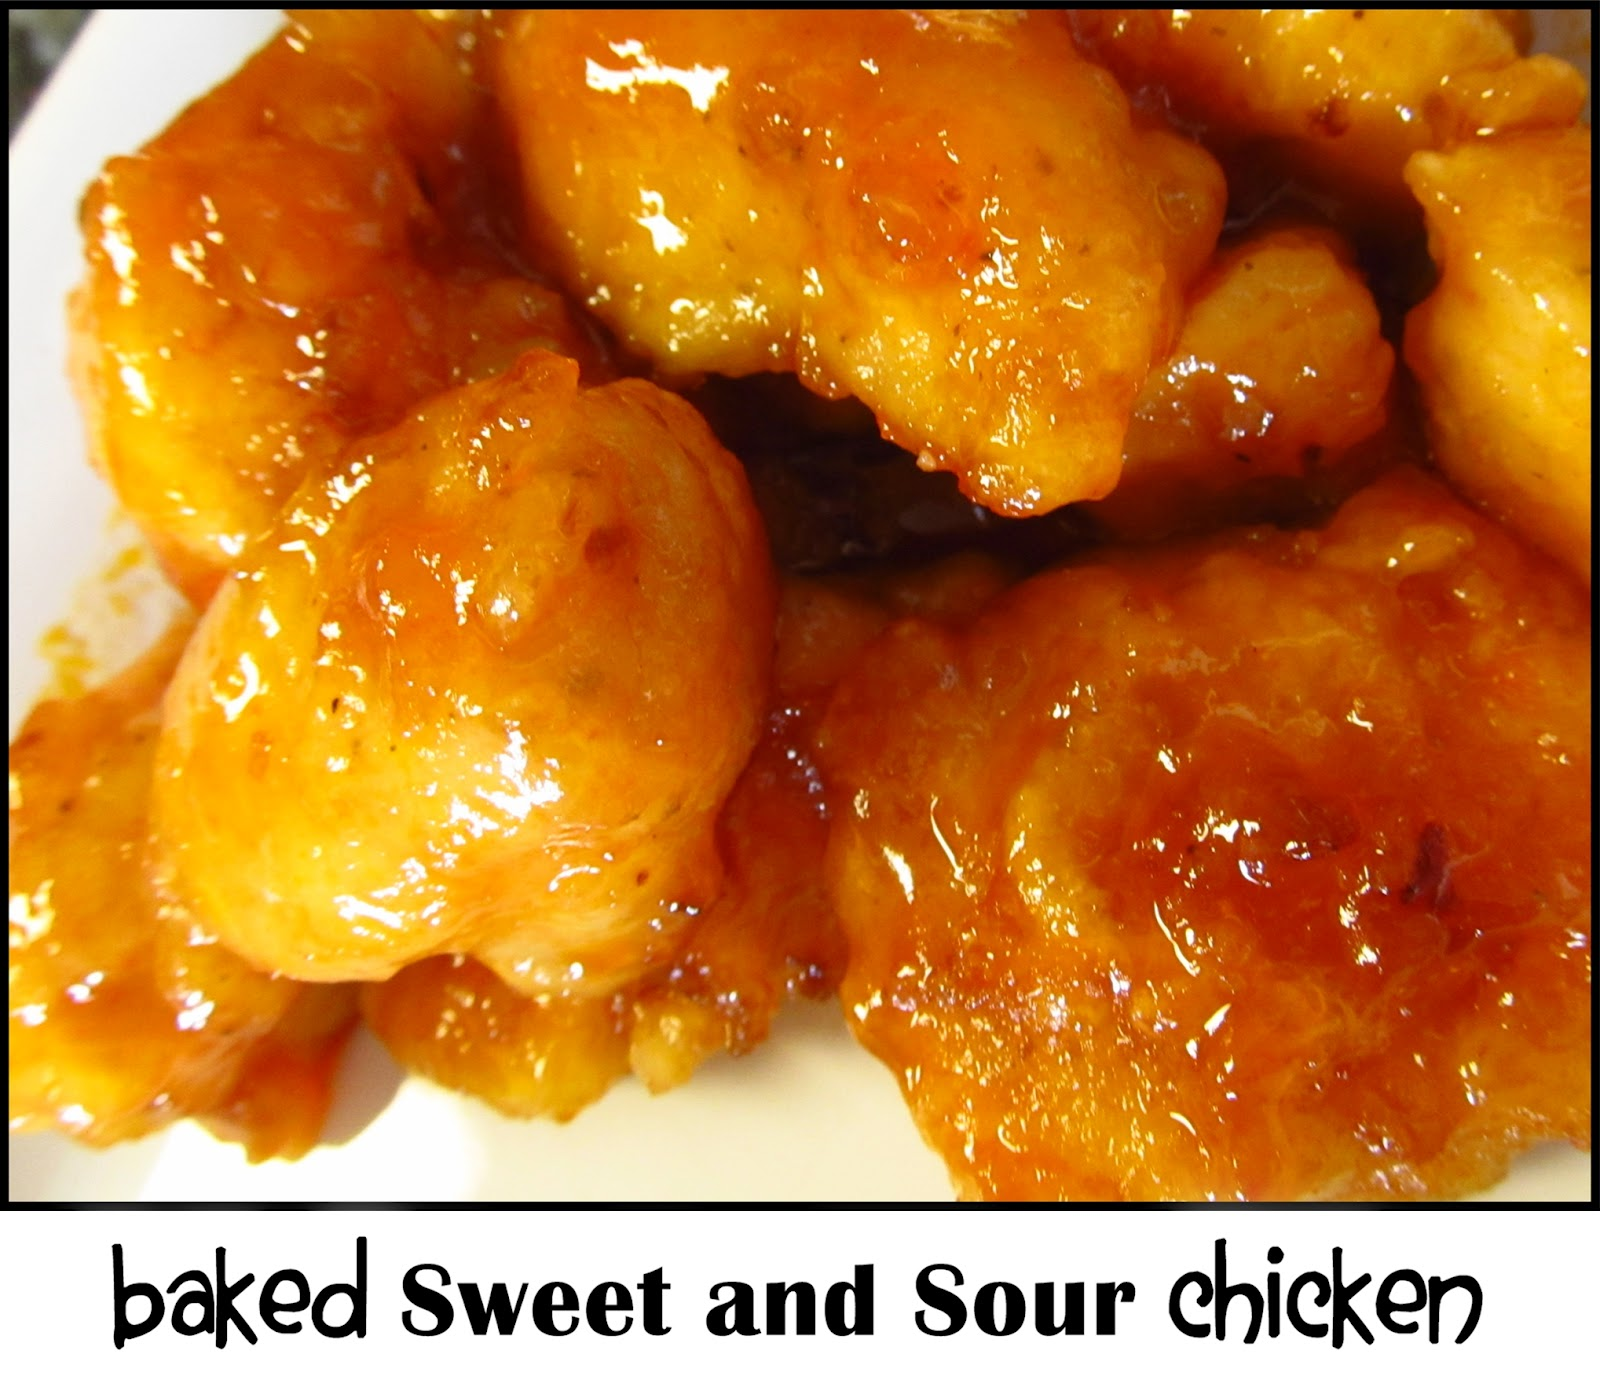 Baked+Sweet+and+Sour+Chicken+1.jpg